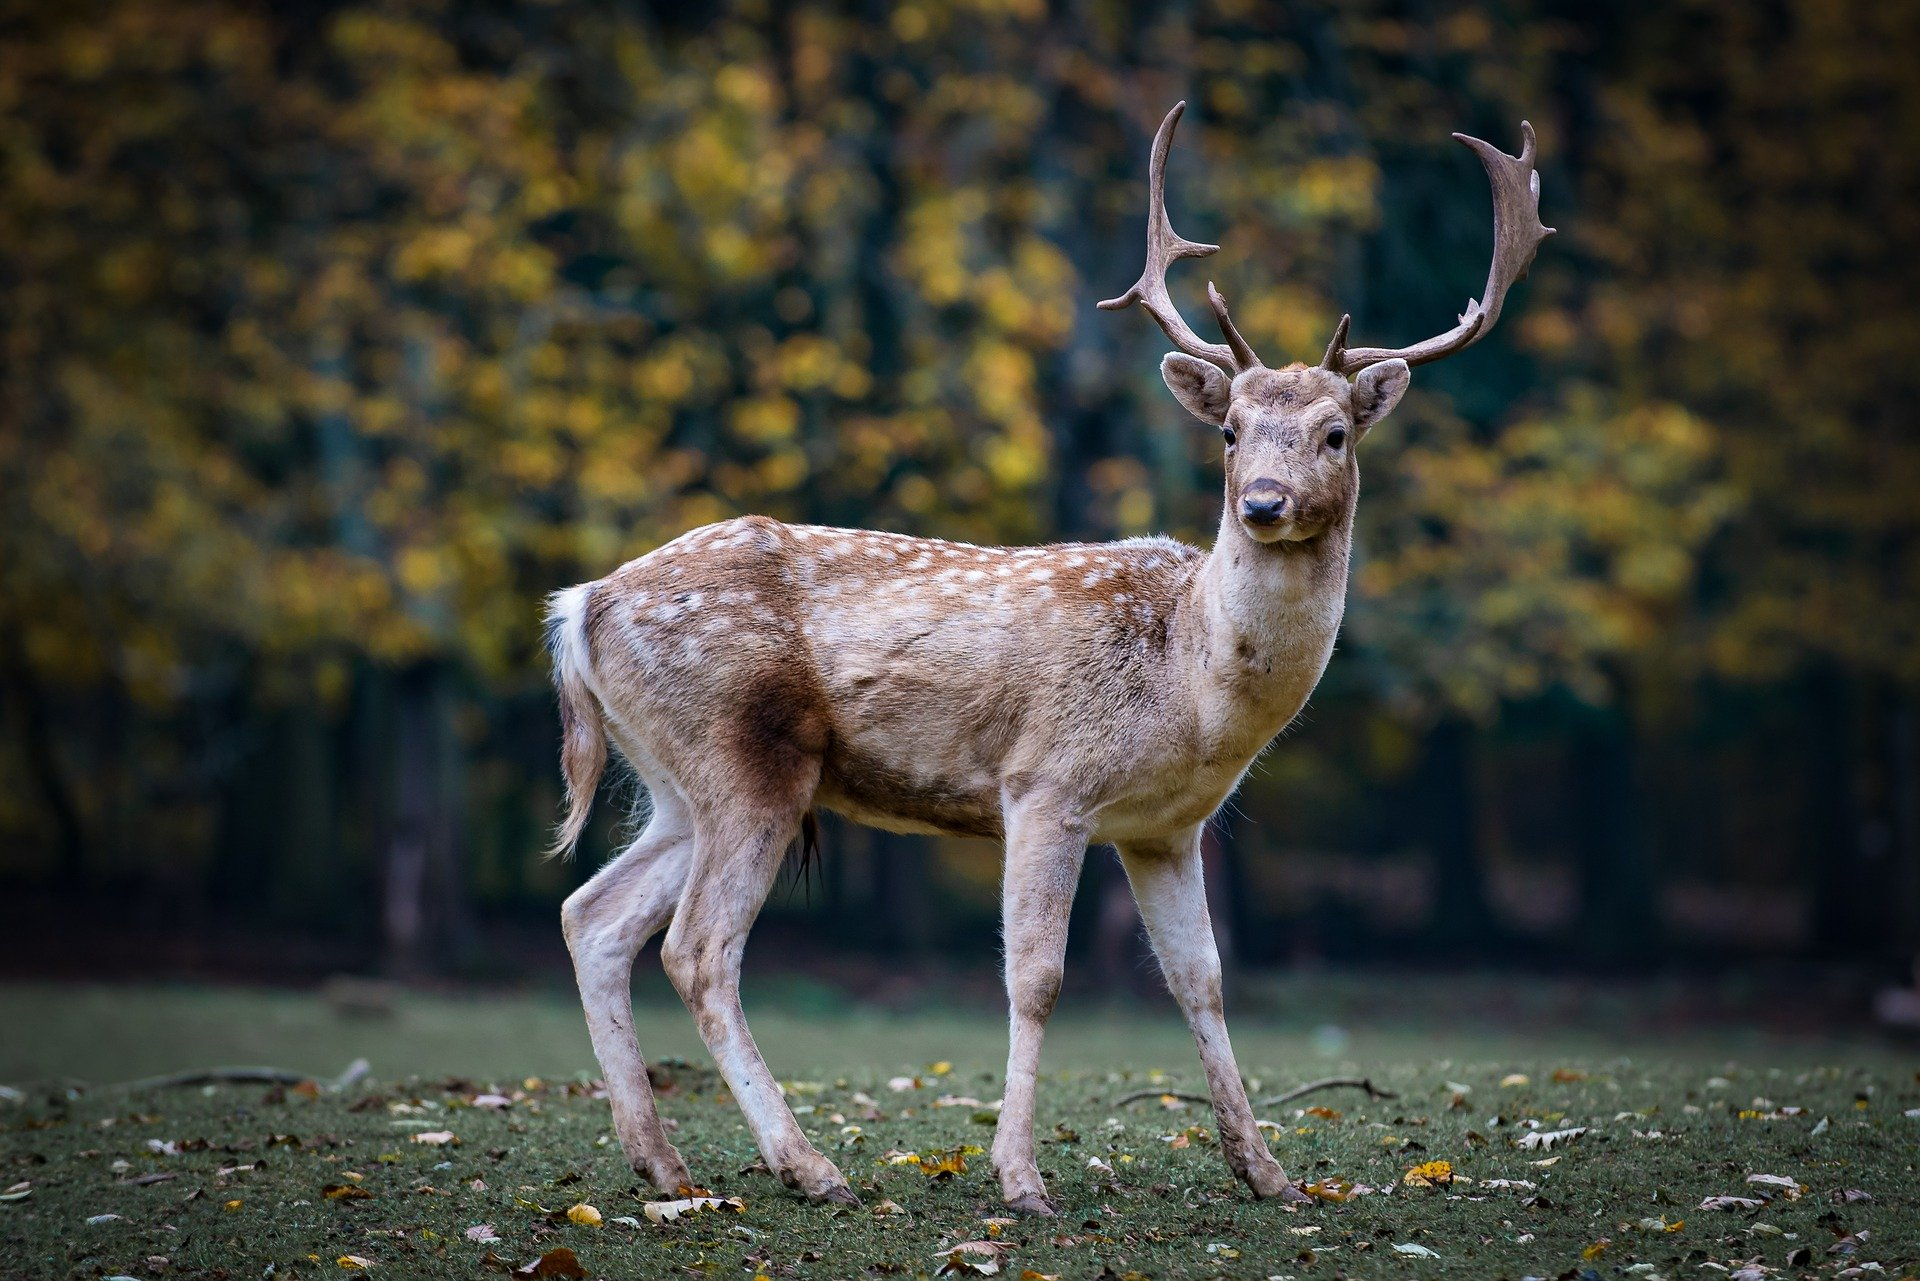 I love being able to see the deer so close to my home!   Photo: Pixabay/hashan